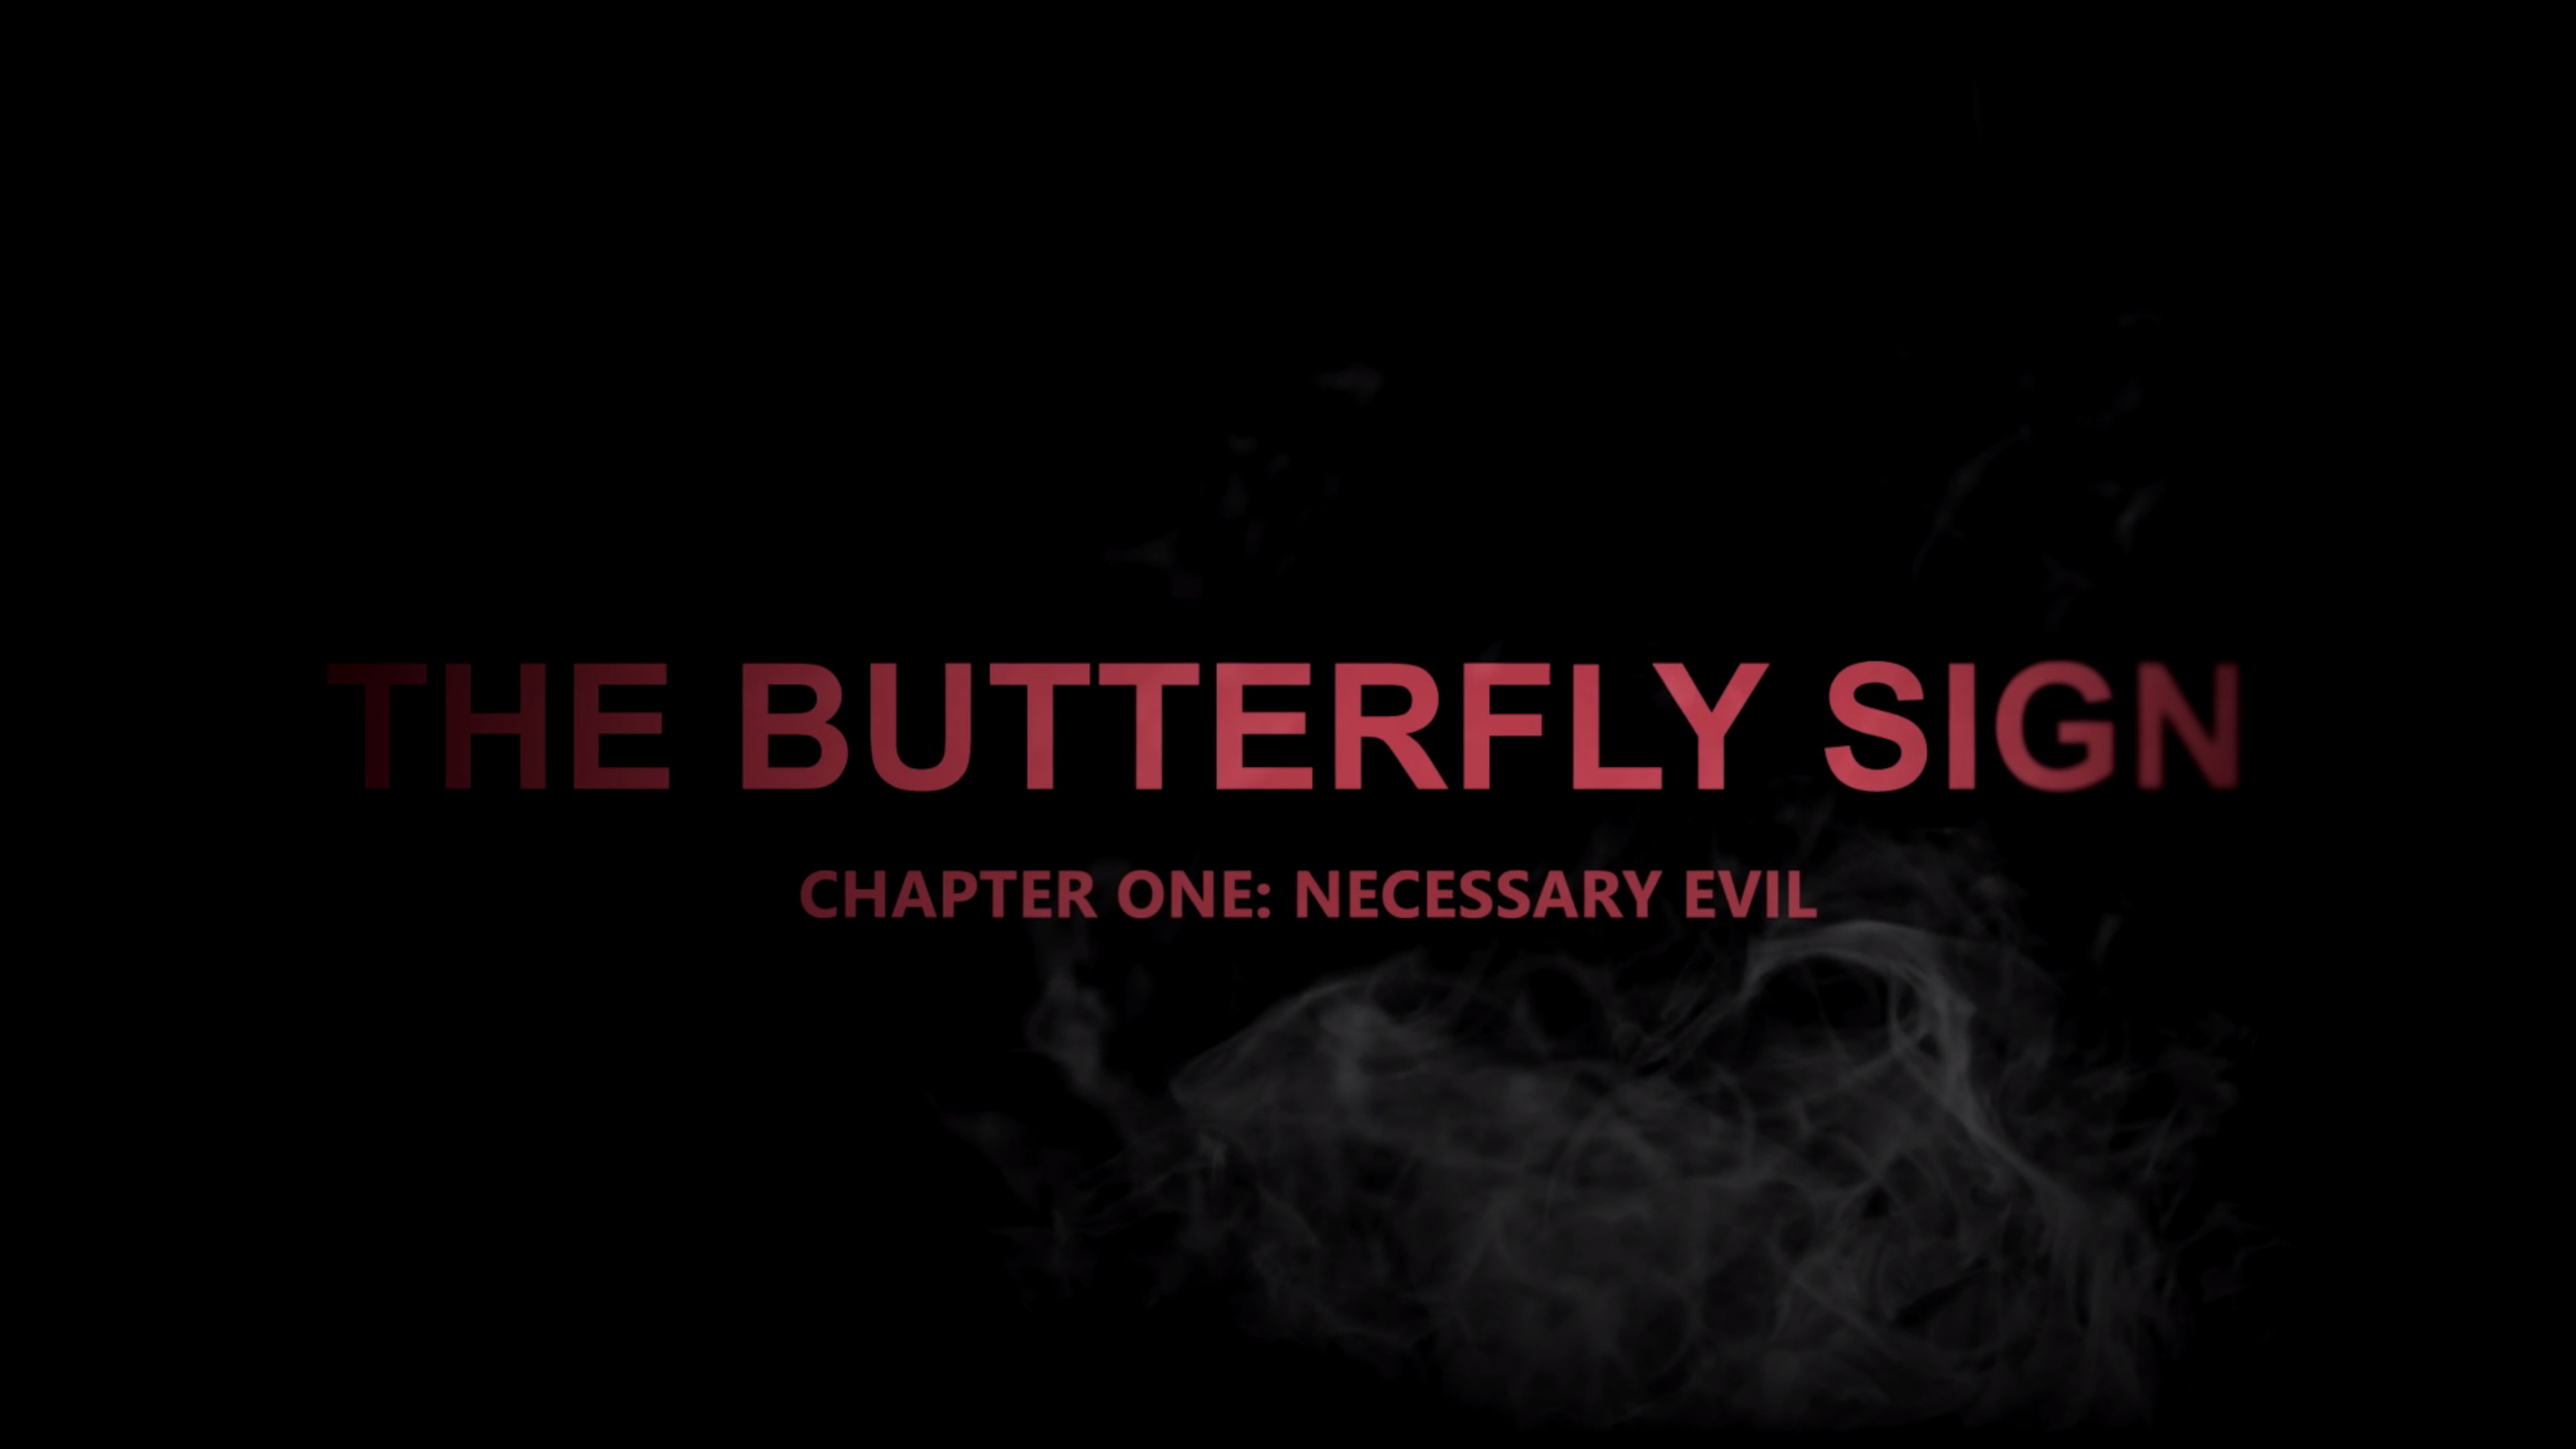 The Butterfly Sign. Chapter One: Necessary Evil